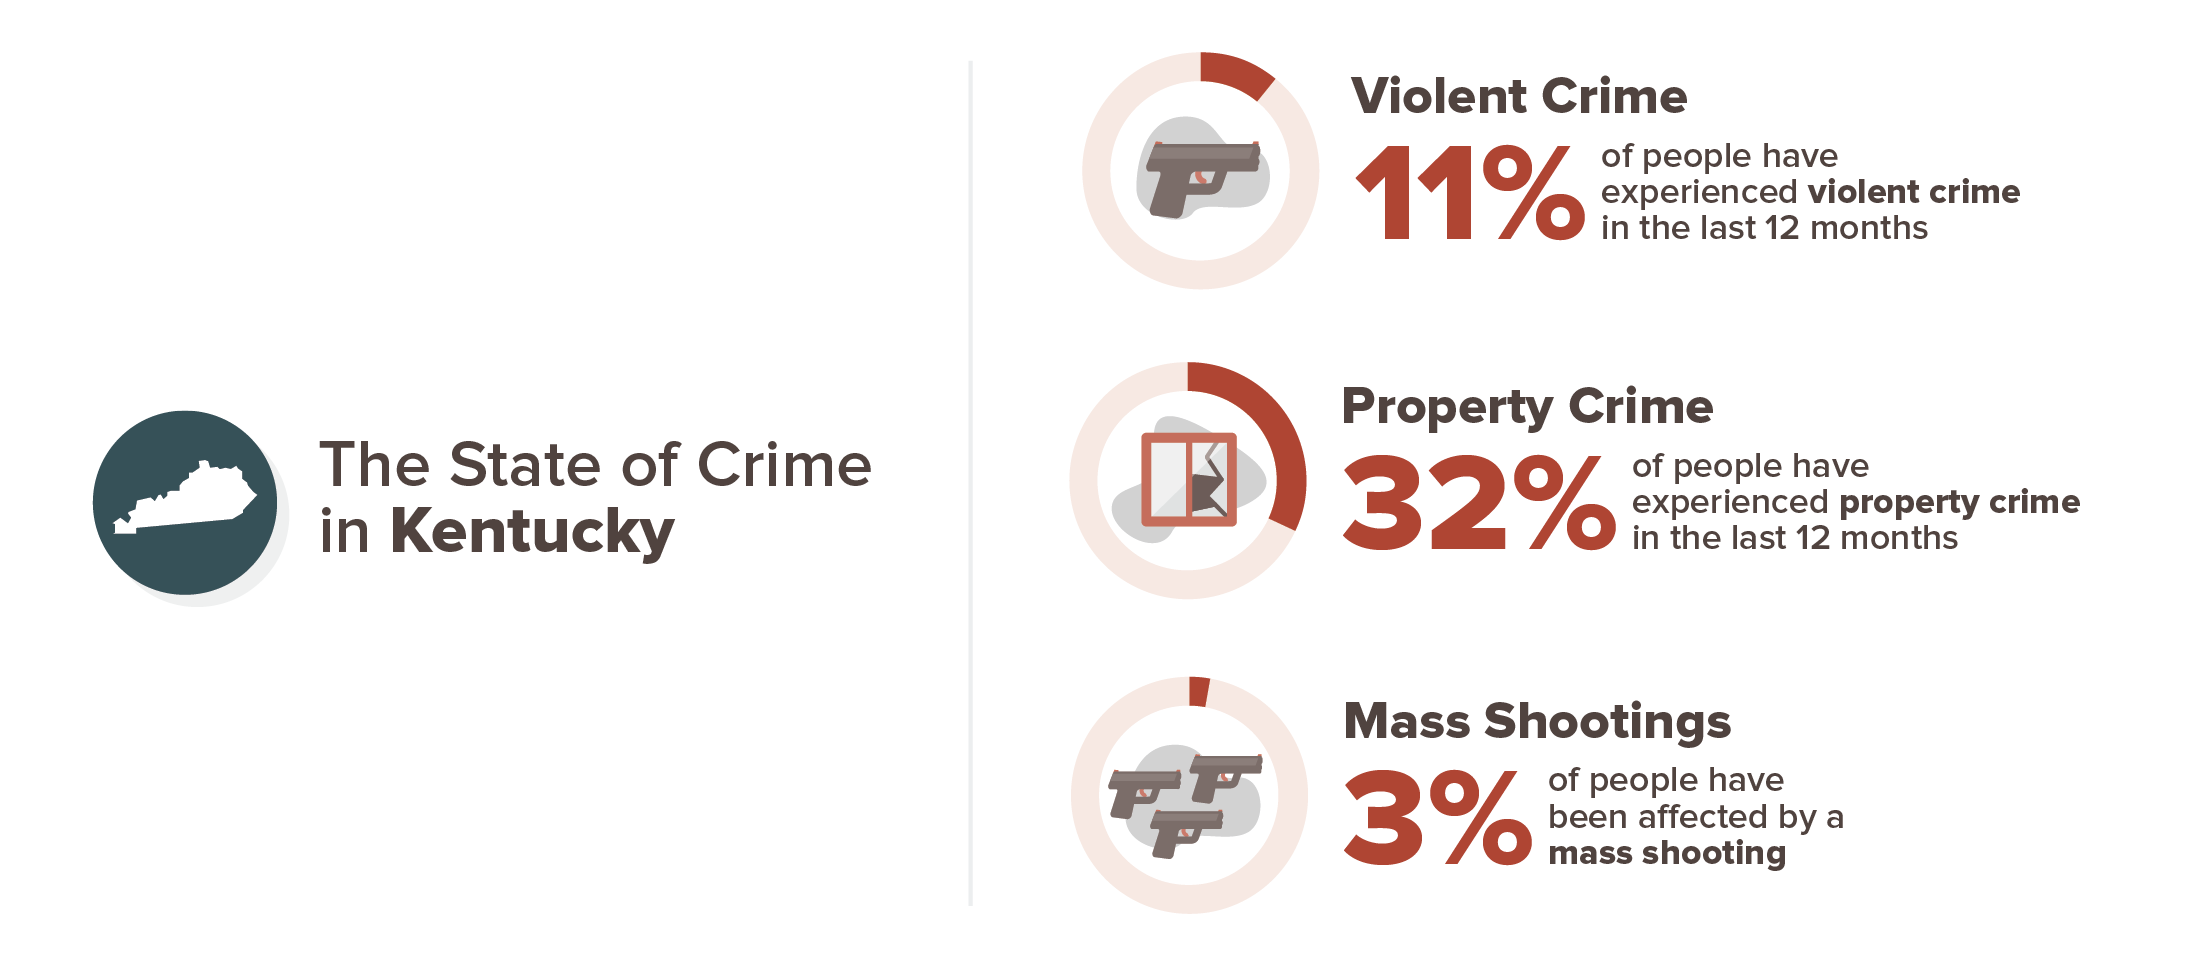 Kentucky crime experience infographic; 11% violent crime, 32% property crime, 3% mass shooting